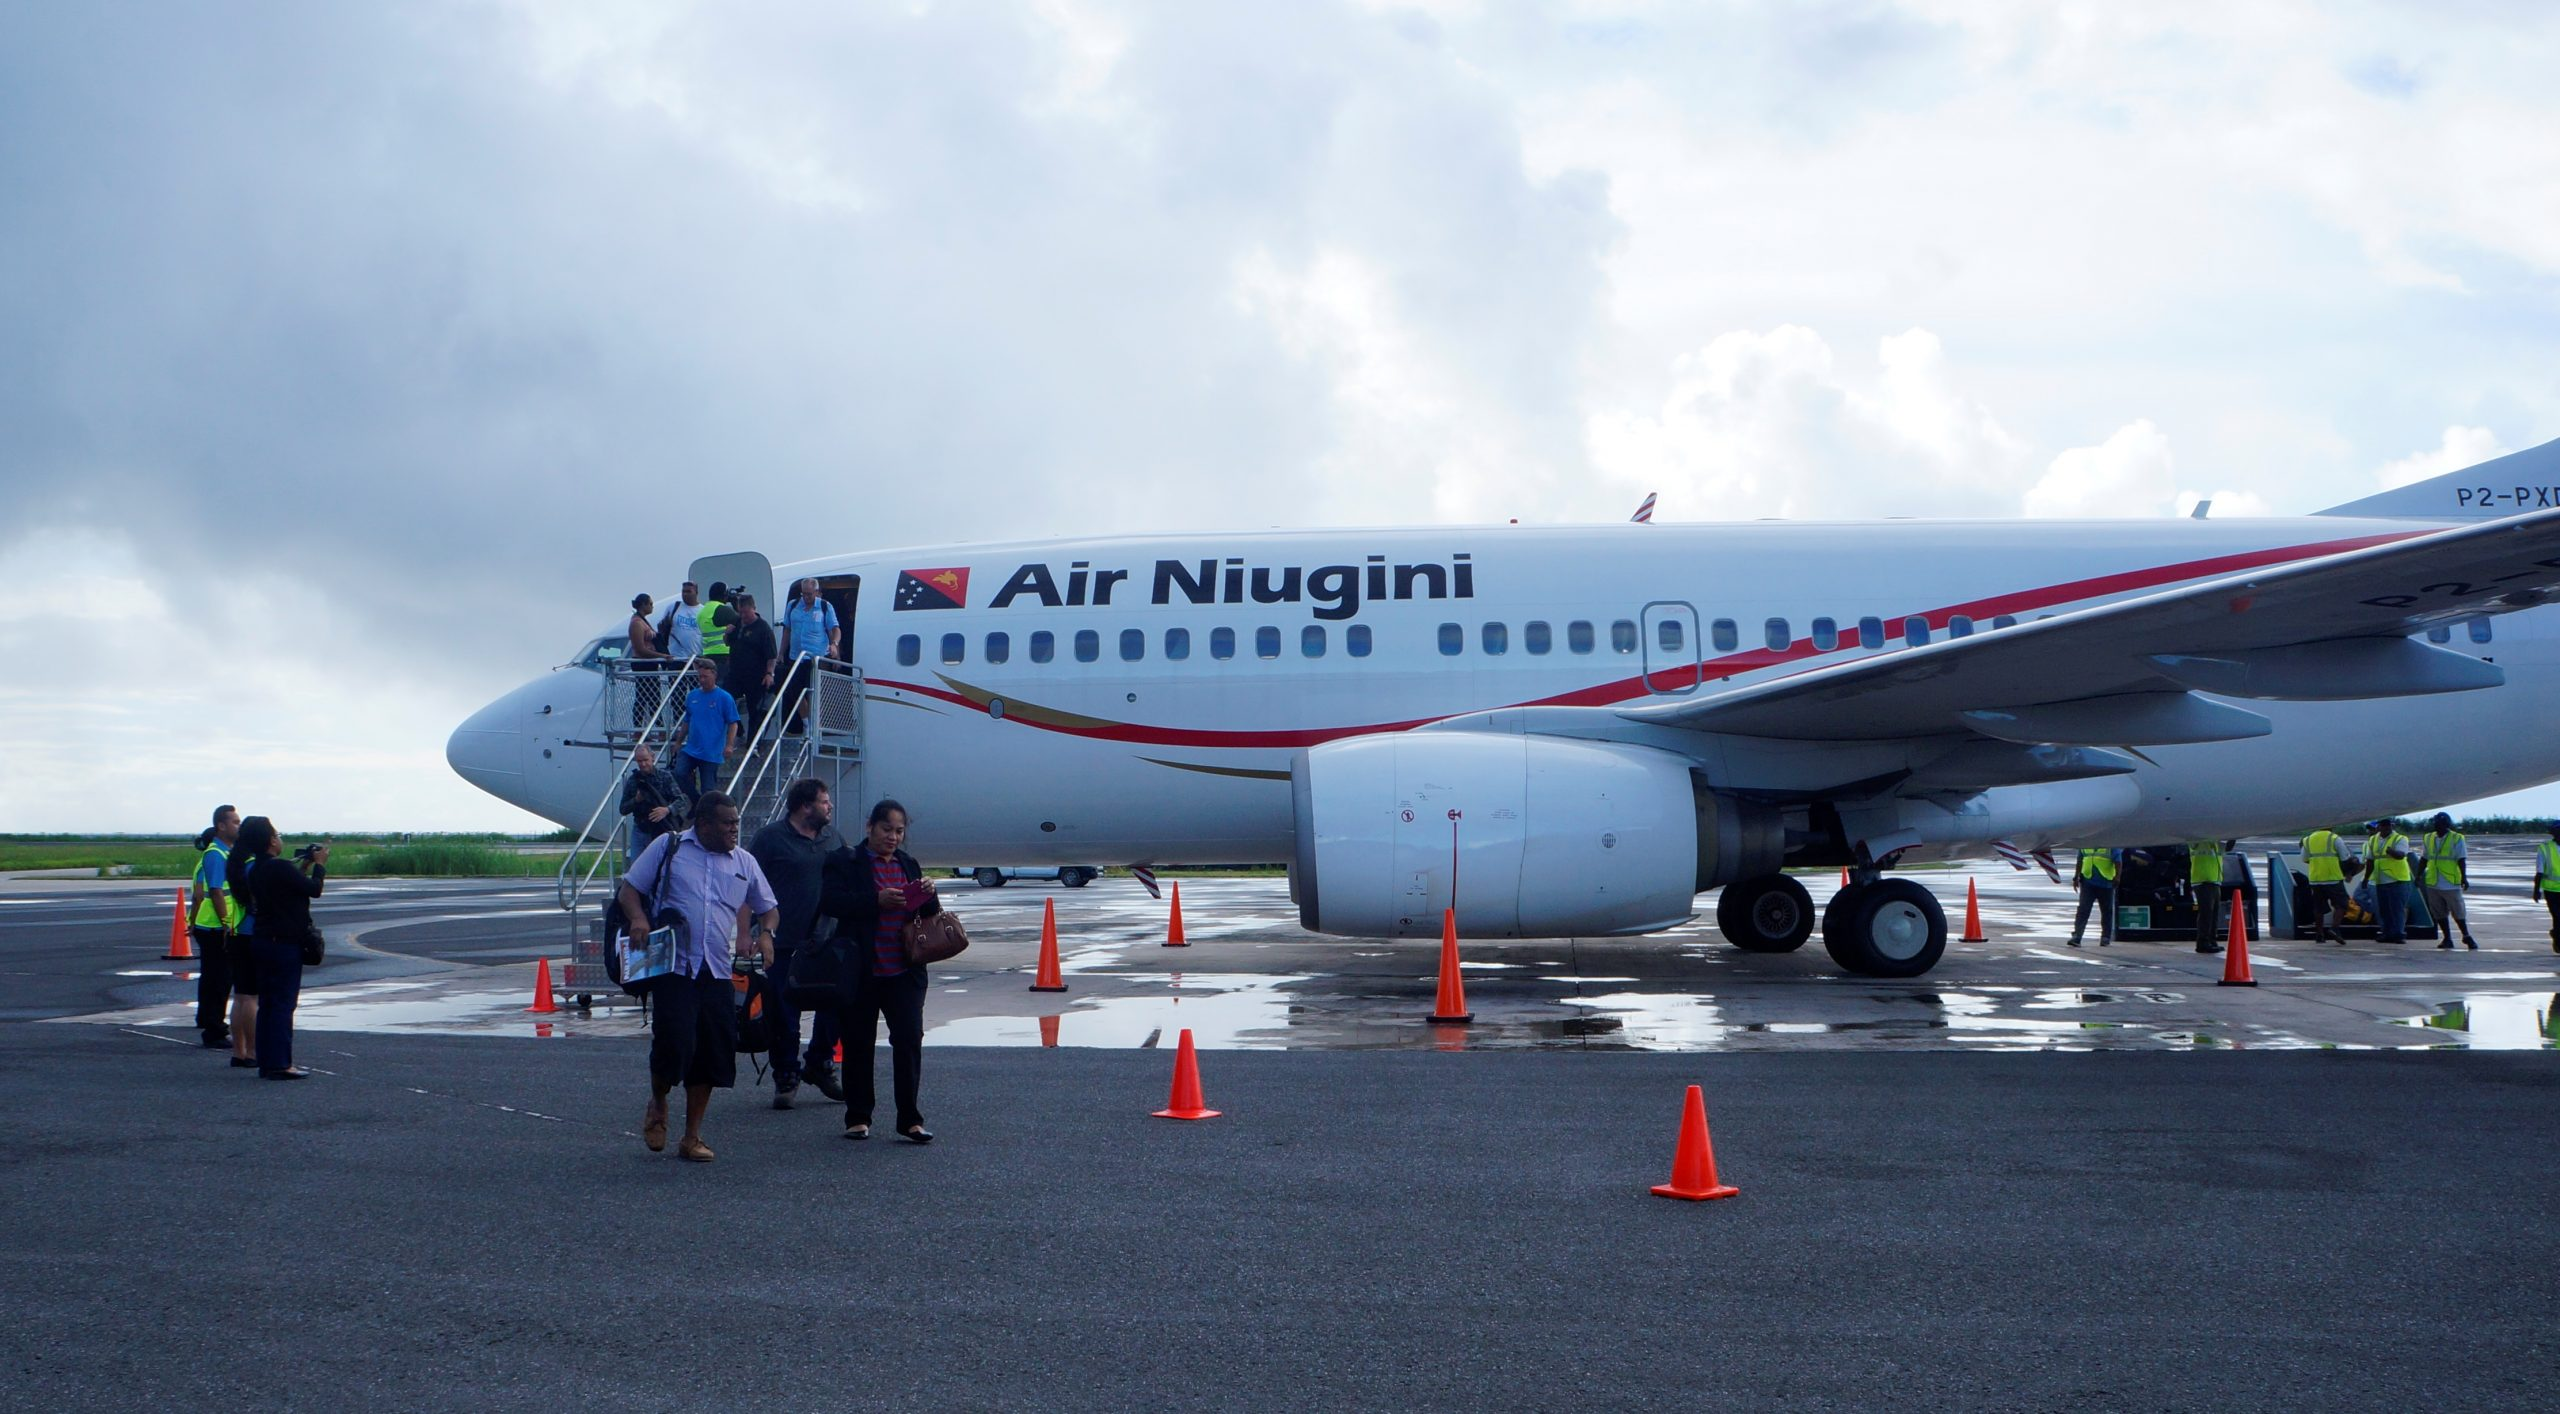 Air Niugini Operates Charter Flight To Repatriate Citizens In Time For Christmas